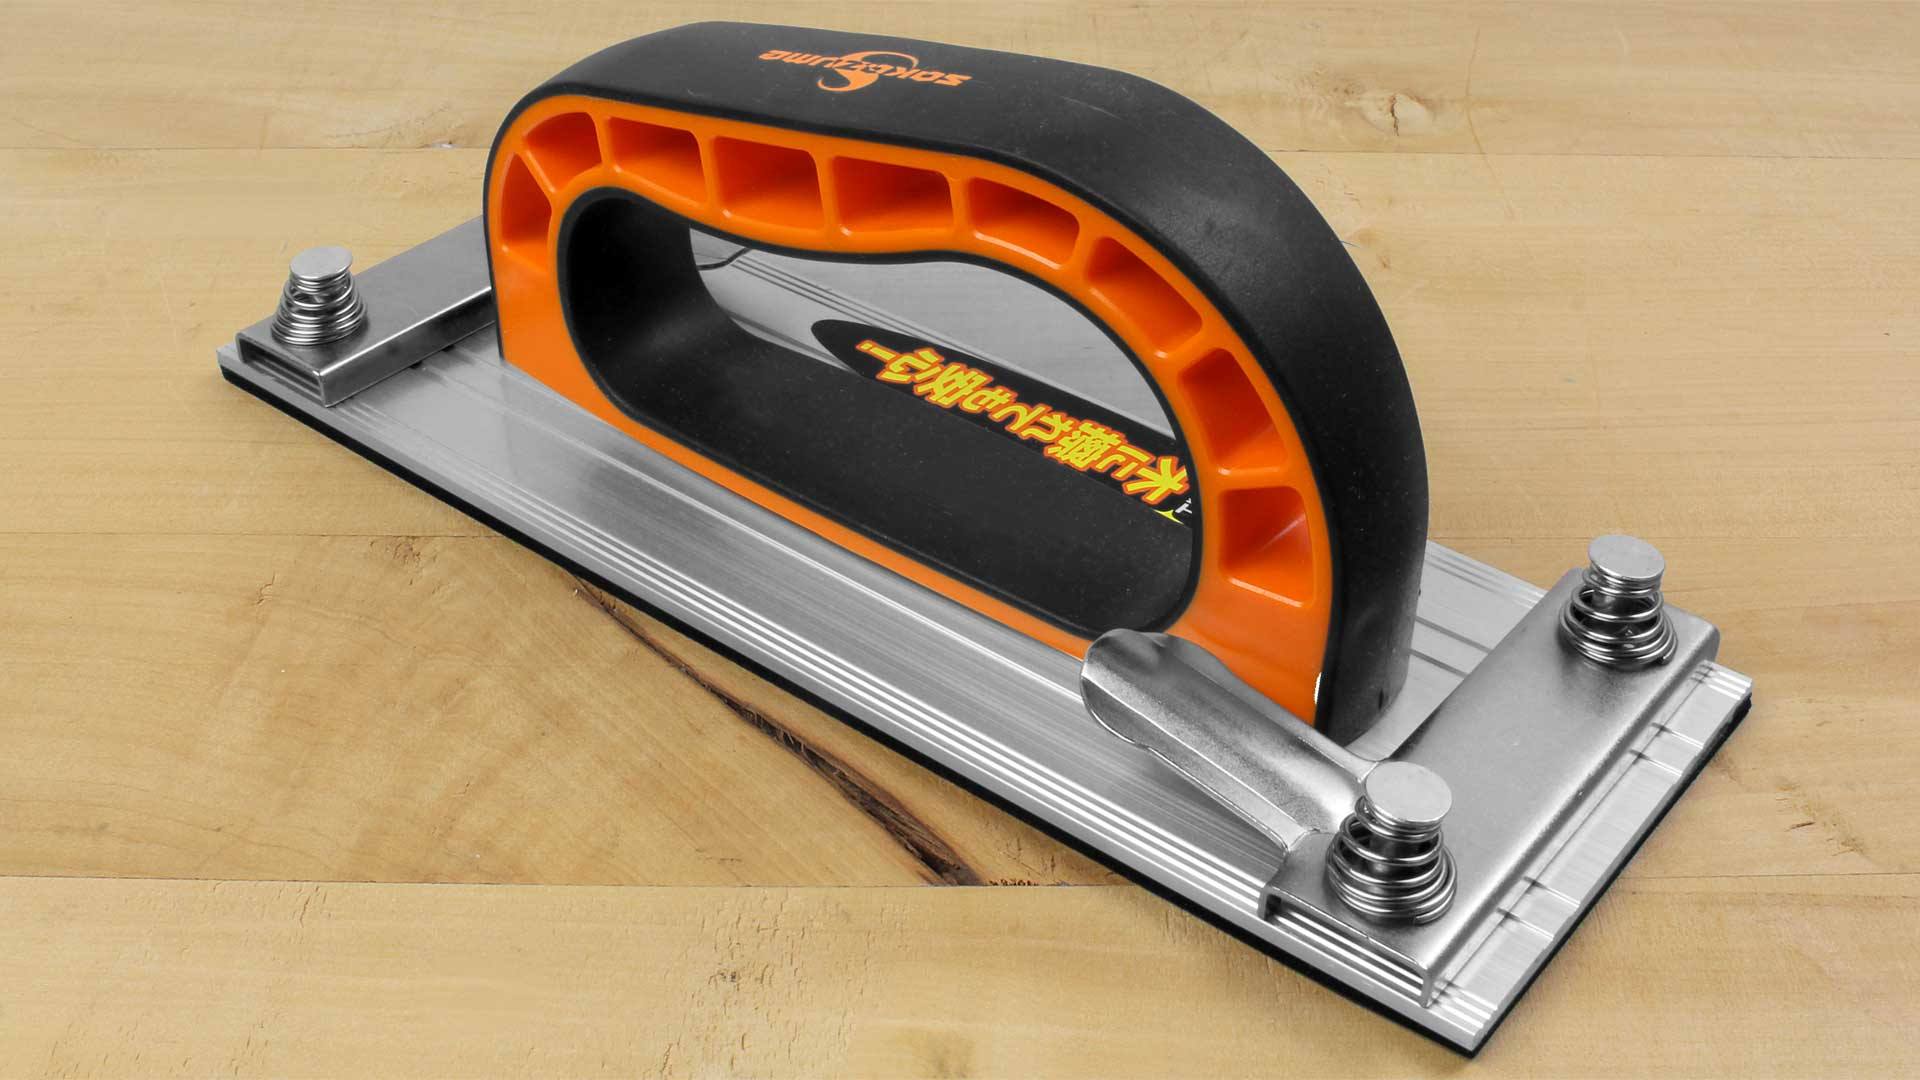 c383bb5e7 Sanding plate with two-component handgrip, foam rubber lining and spring  clips